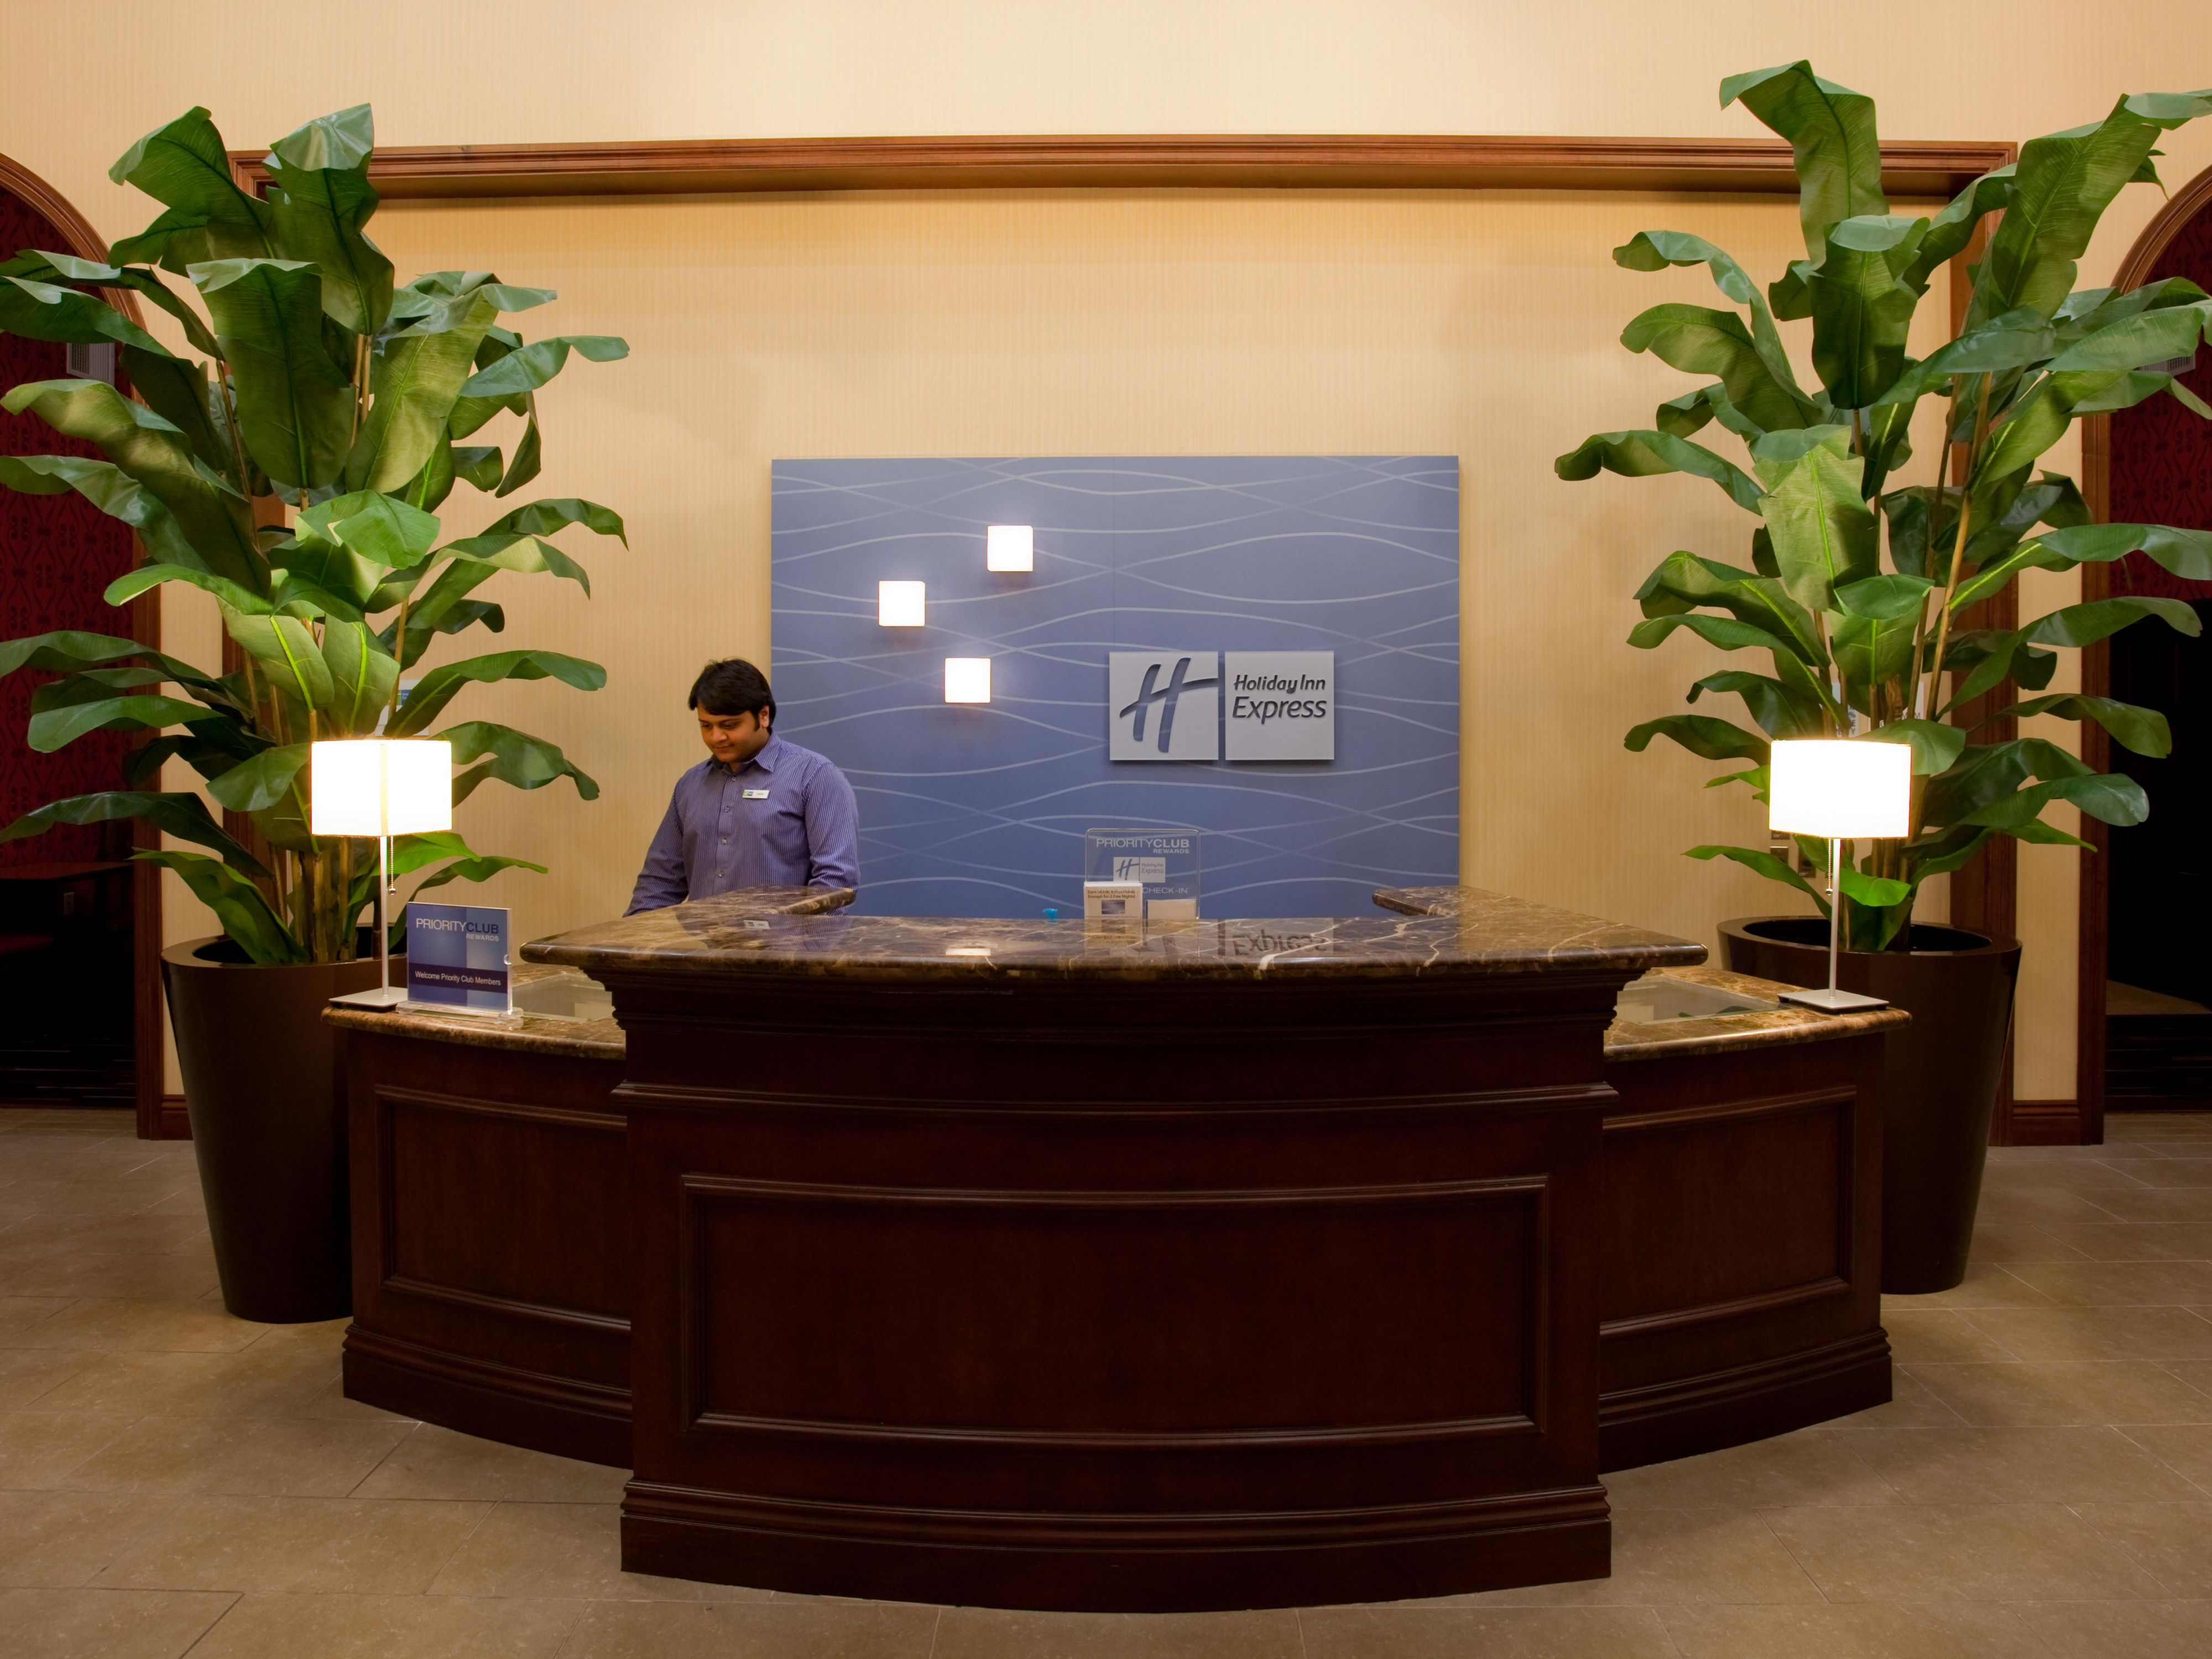 Our Front Desk is waiting to give you friendly service